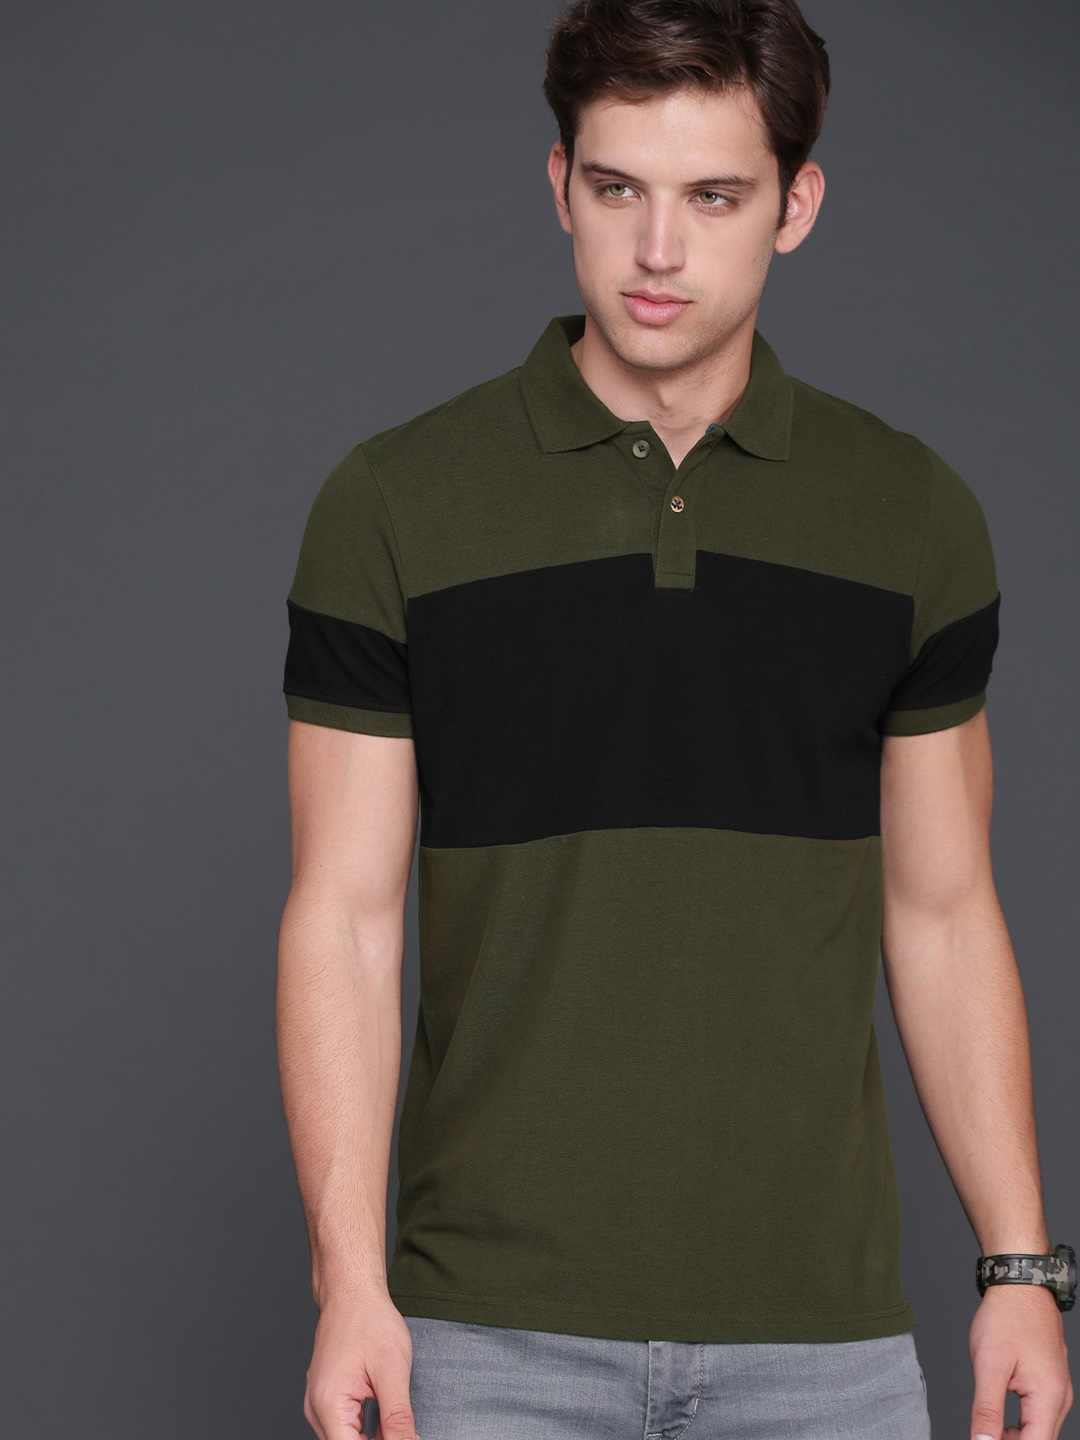 ad2344308ee3 WROGN Men Olive Green & Black Colourblocked Polo Collar Slim Fit T-shirt